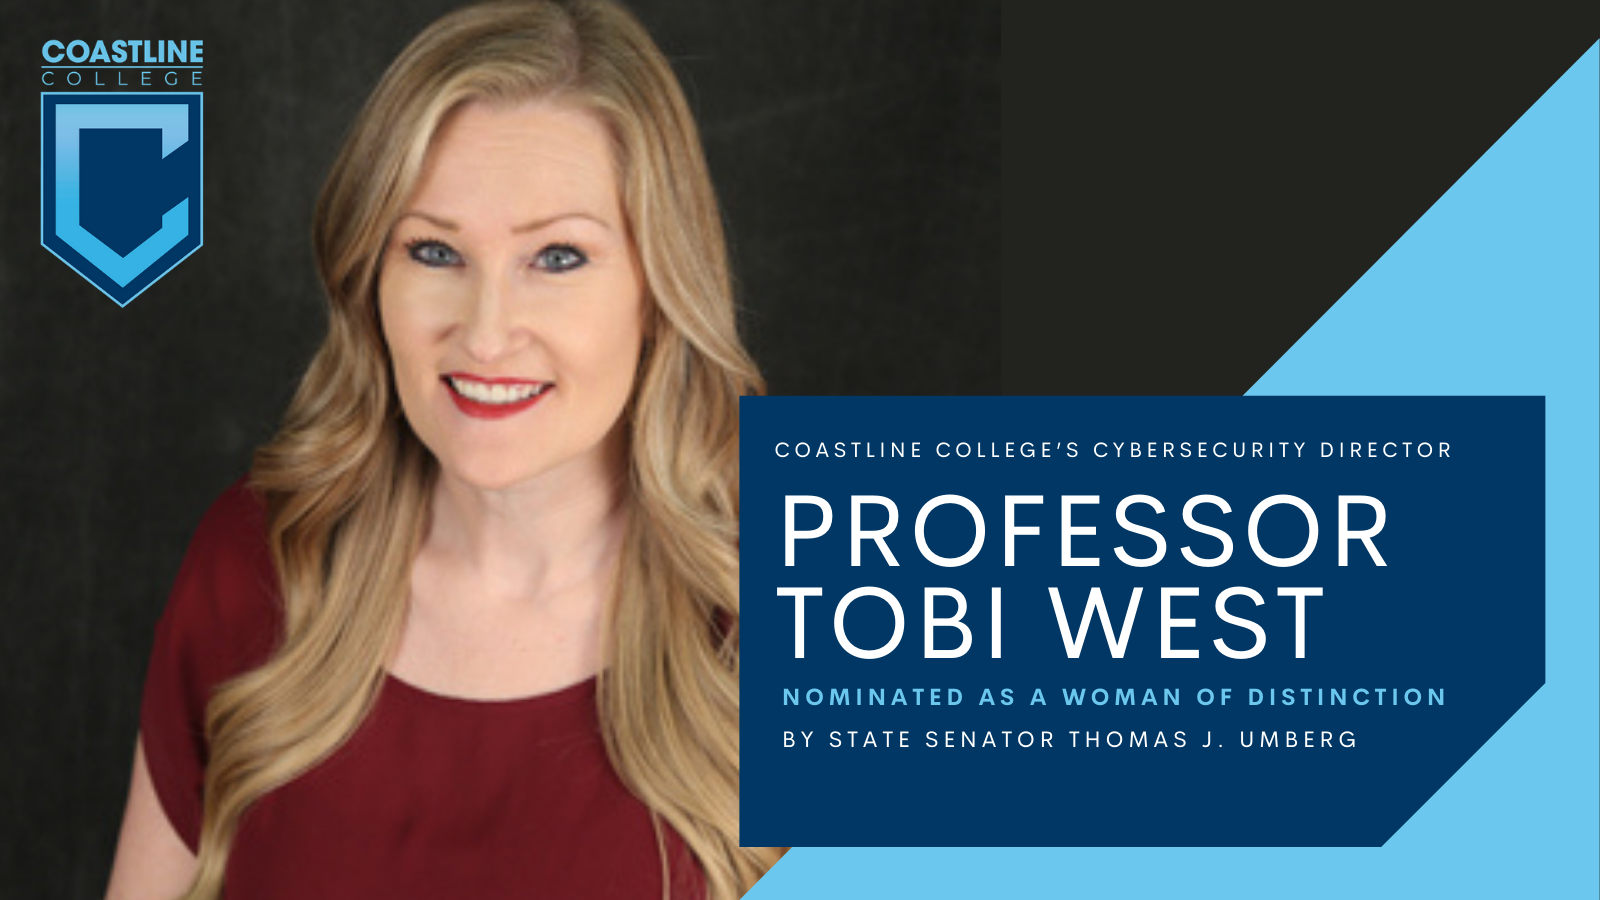 Coastline College banner says Tobi West nominated as a woman of distinction.